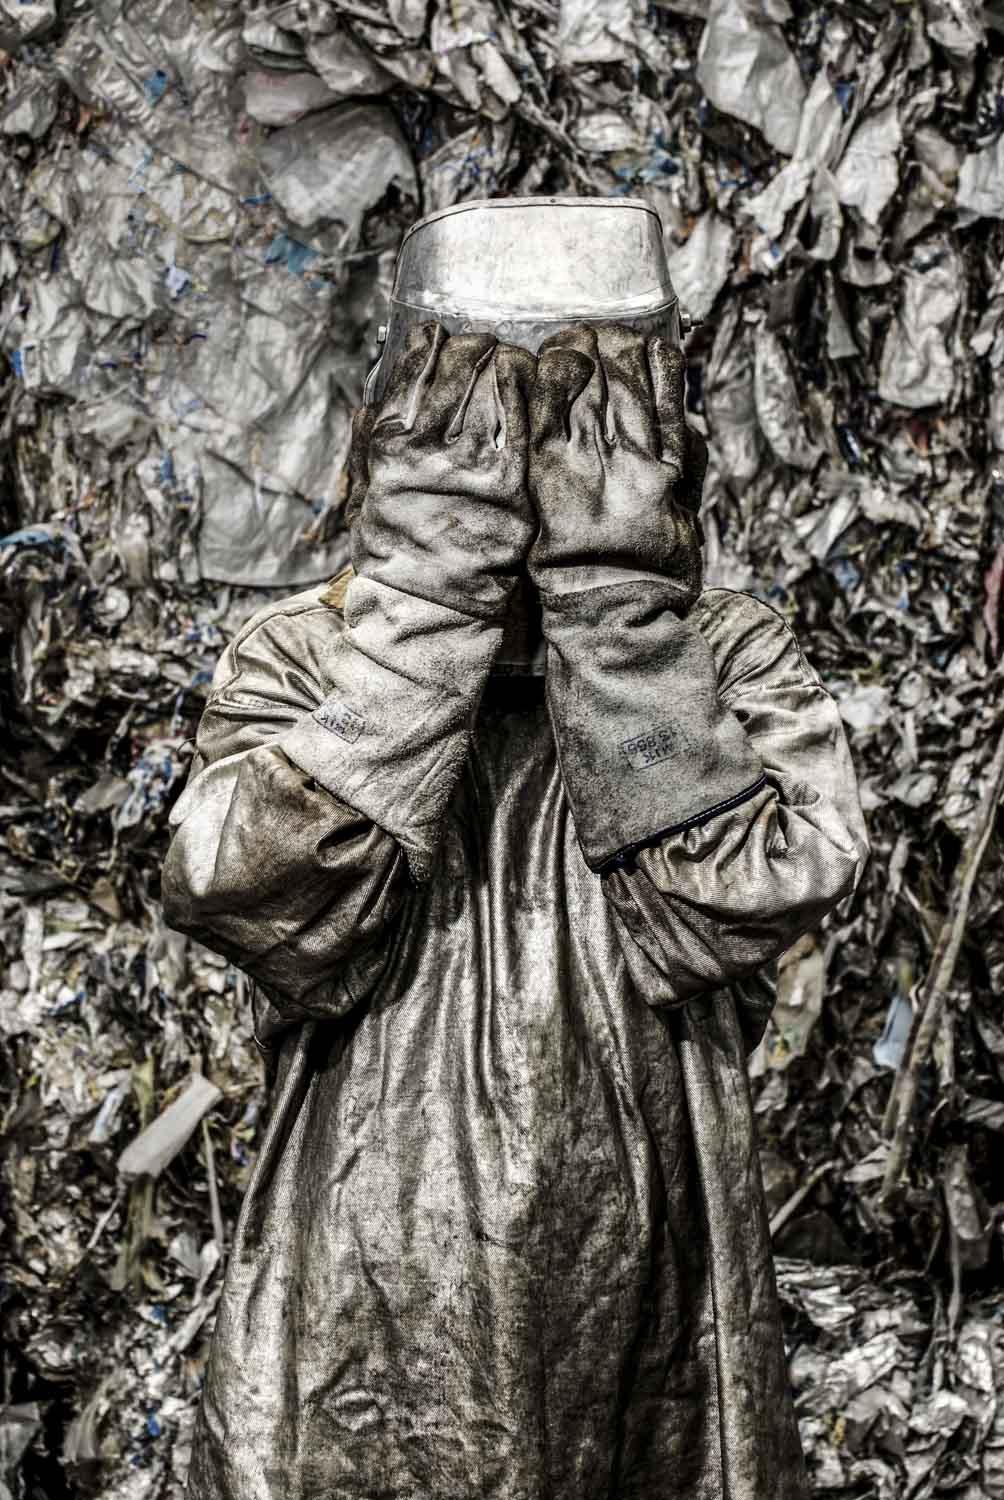 Recycling Worker, ETT Piracicaba.